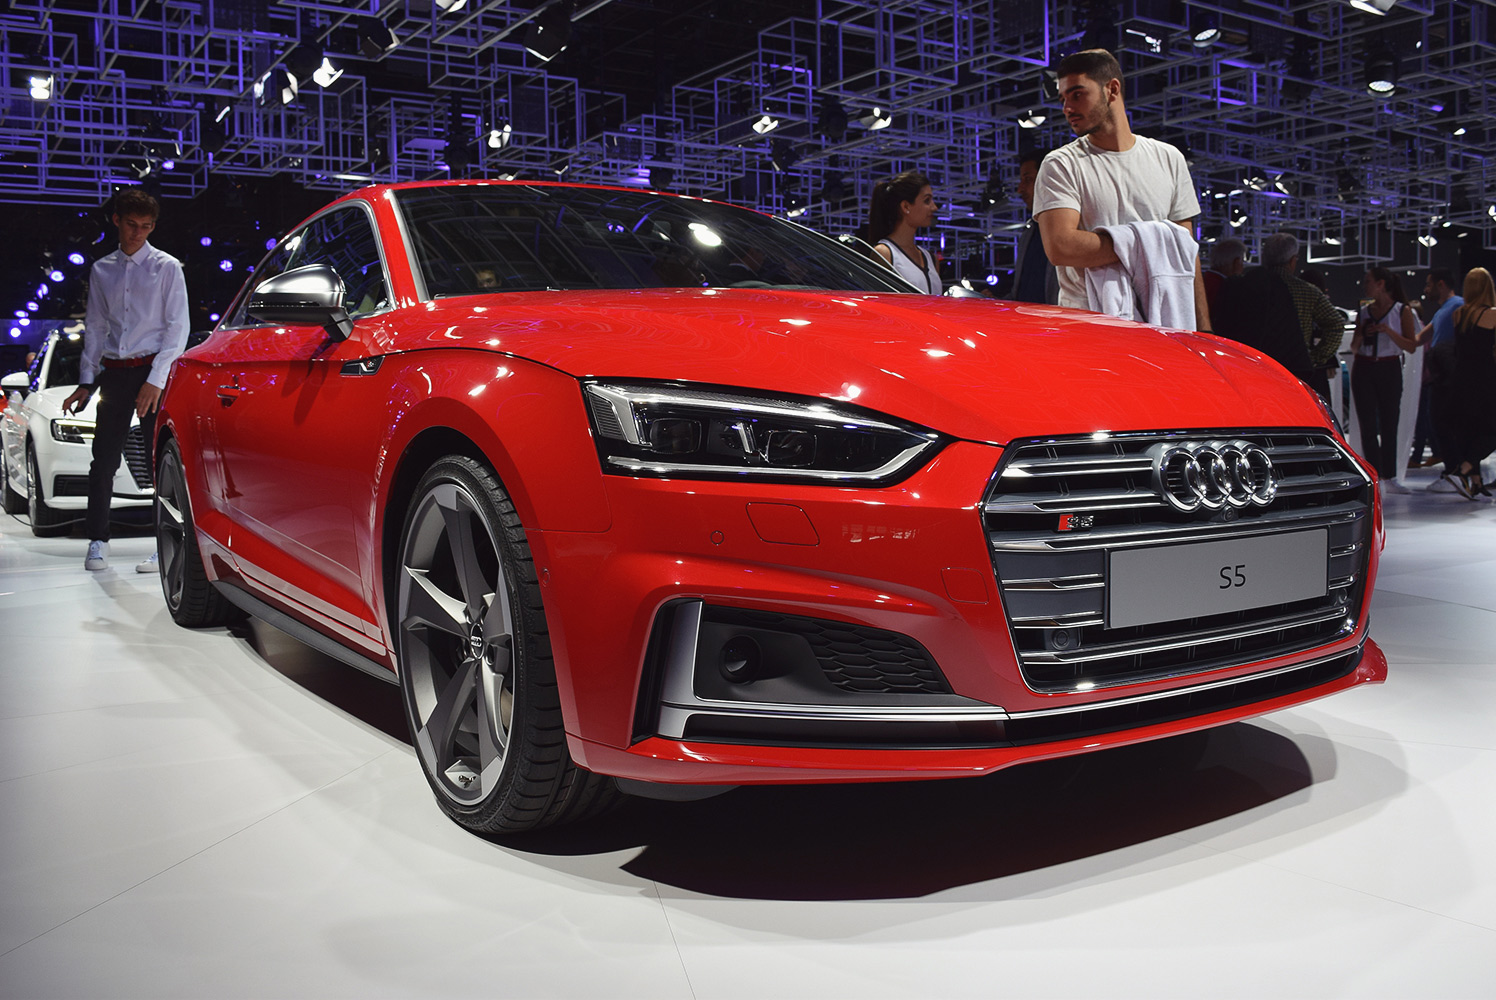 Audi S5 at Paris Motor Show